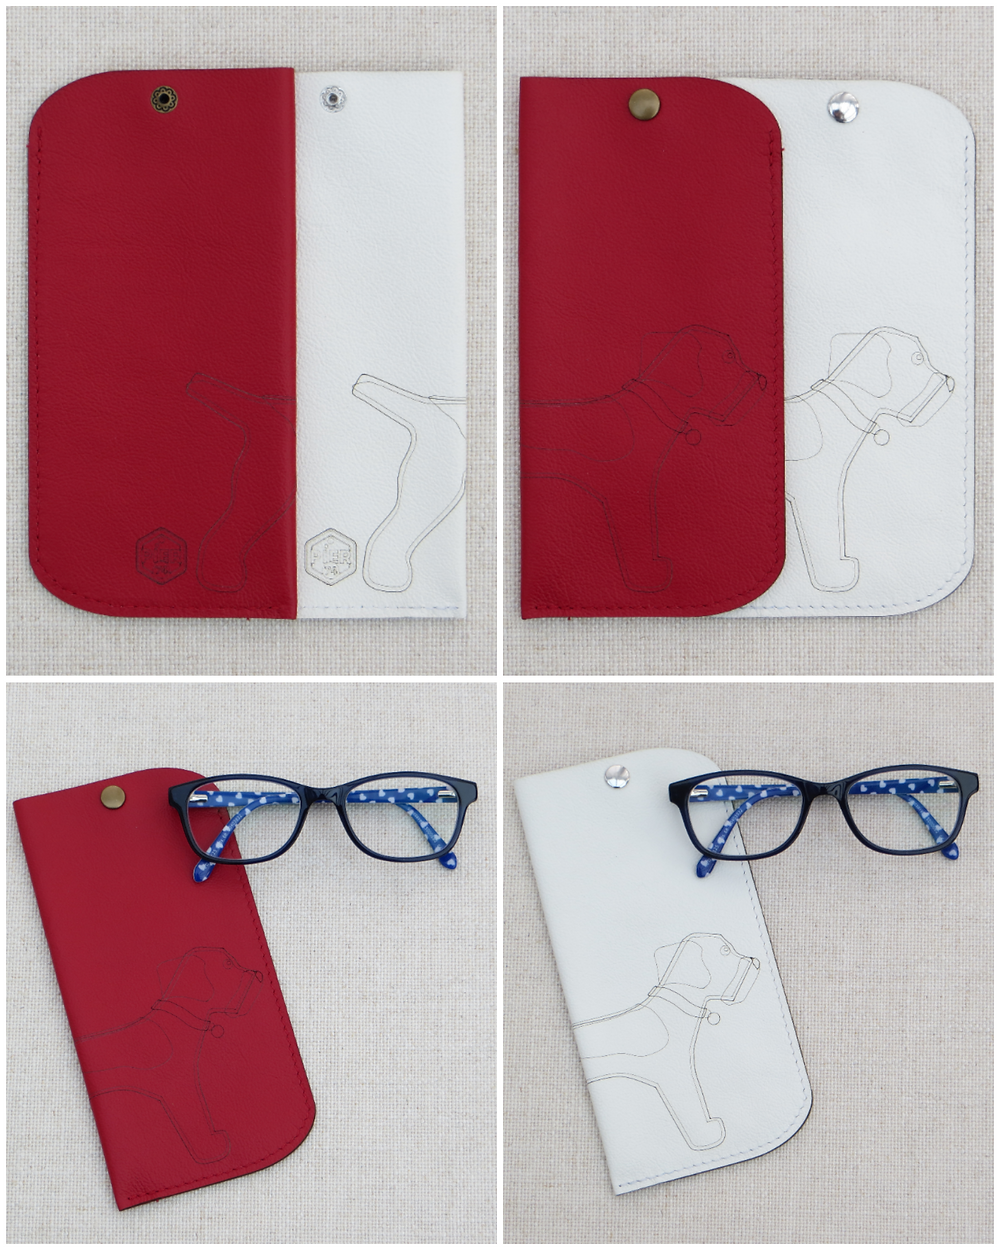 collage of red and white glasses cases with the wrap around border terrier motif